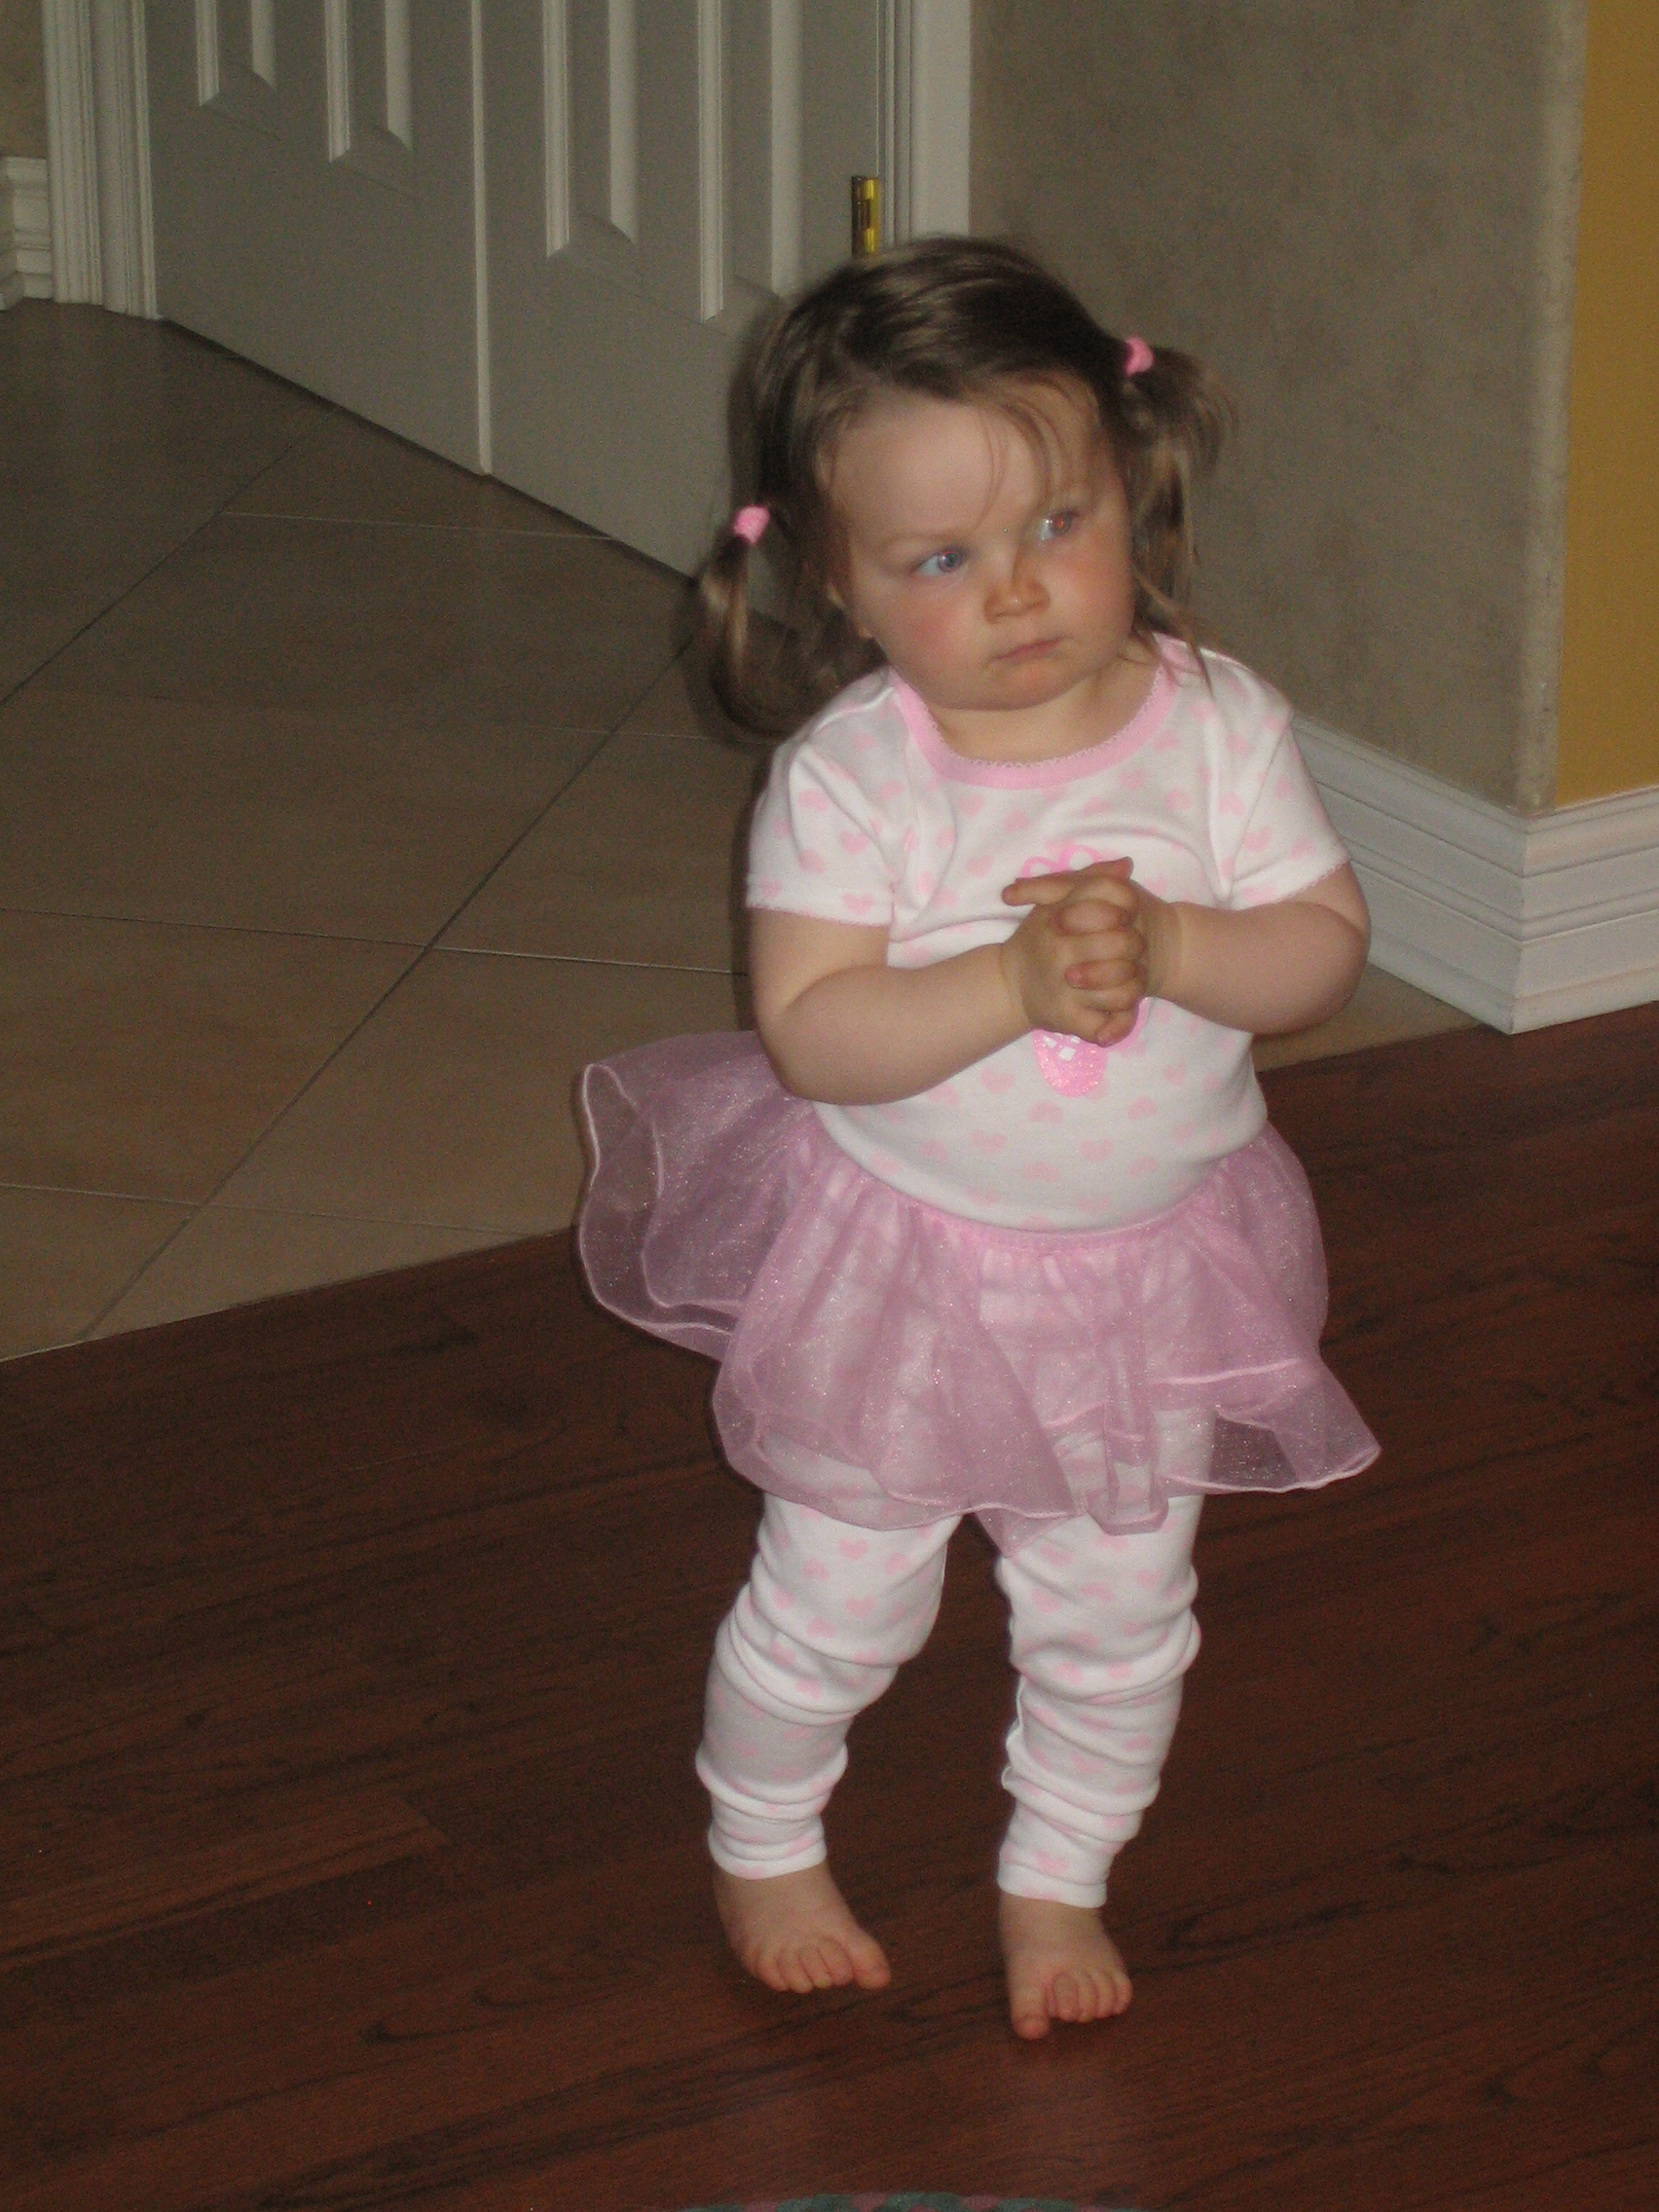 Gigi in her ballet outfit.